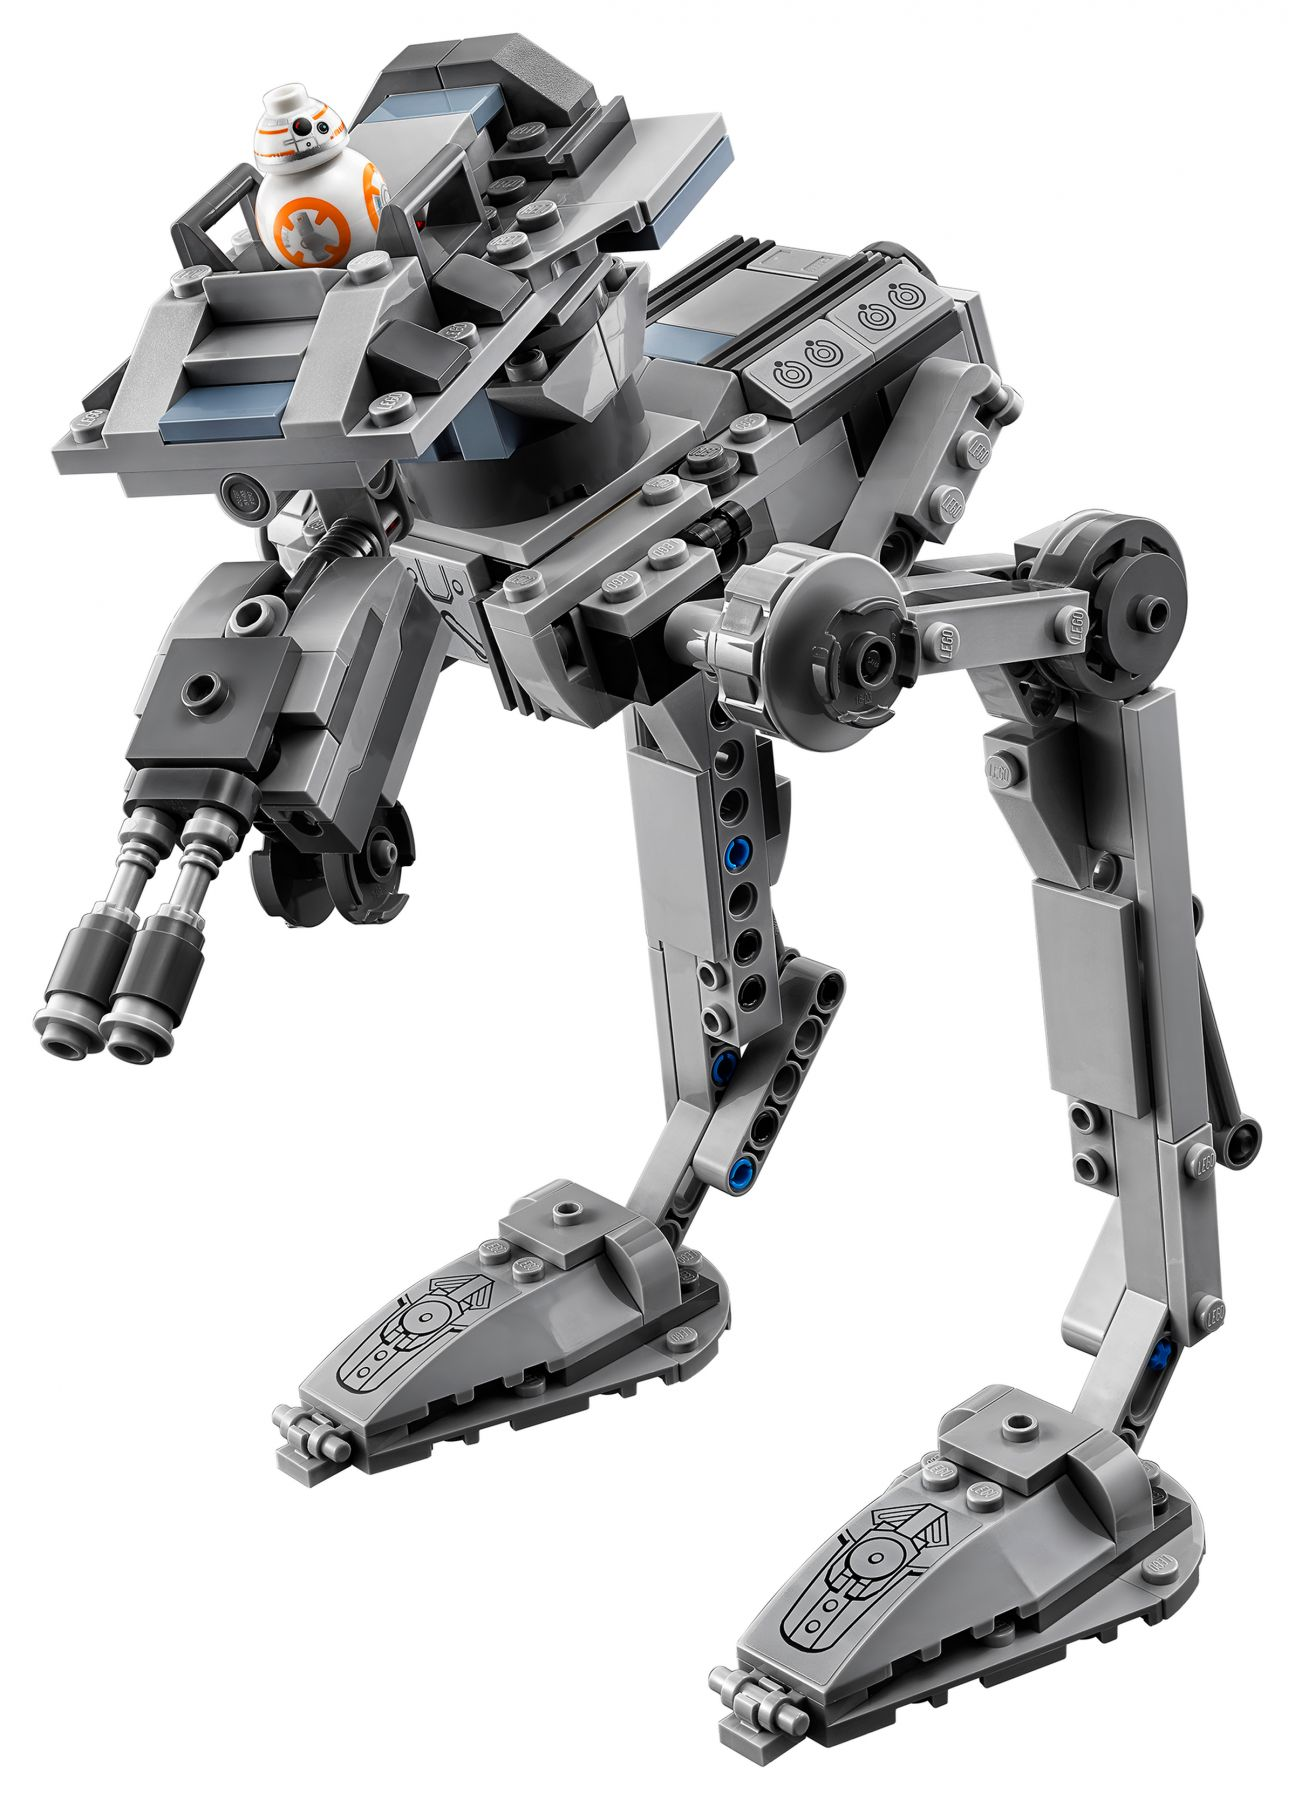 LEGO Star Wars 75201 First Order AT-ST™ LEGO_75201_alt1.jpg